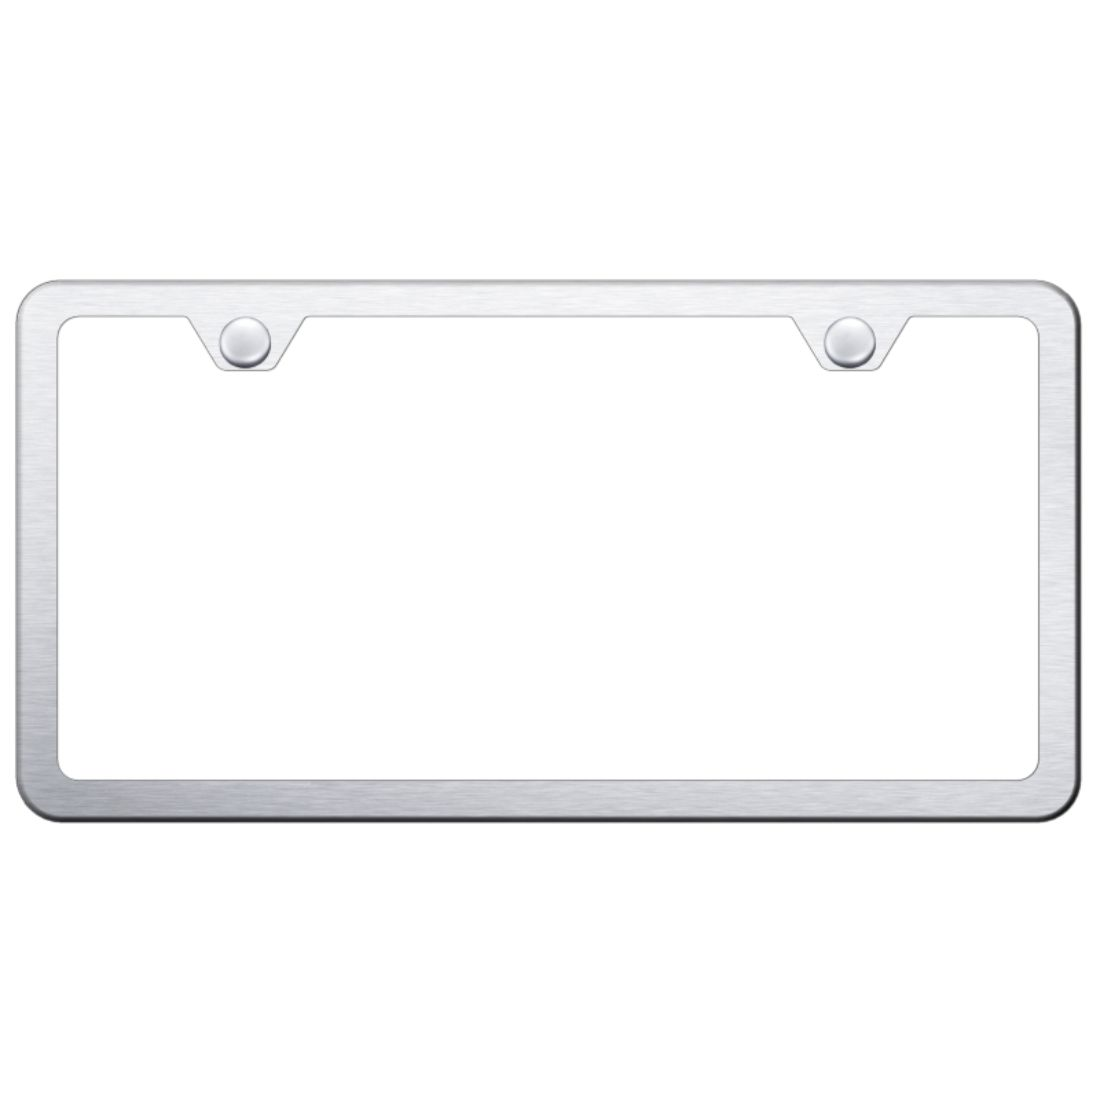 Blank Plain Stainless Steel License Plate